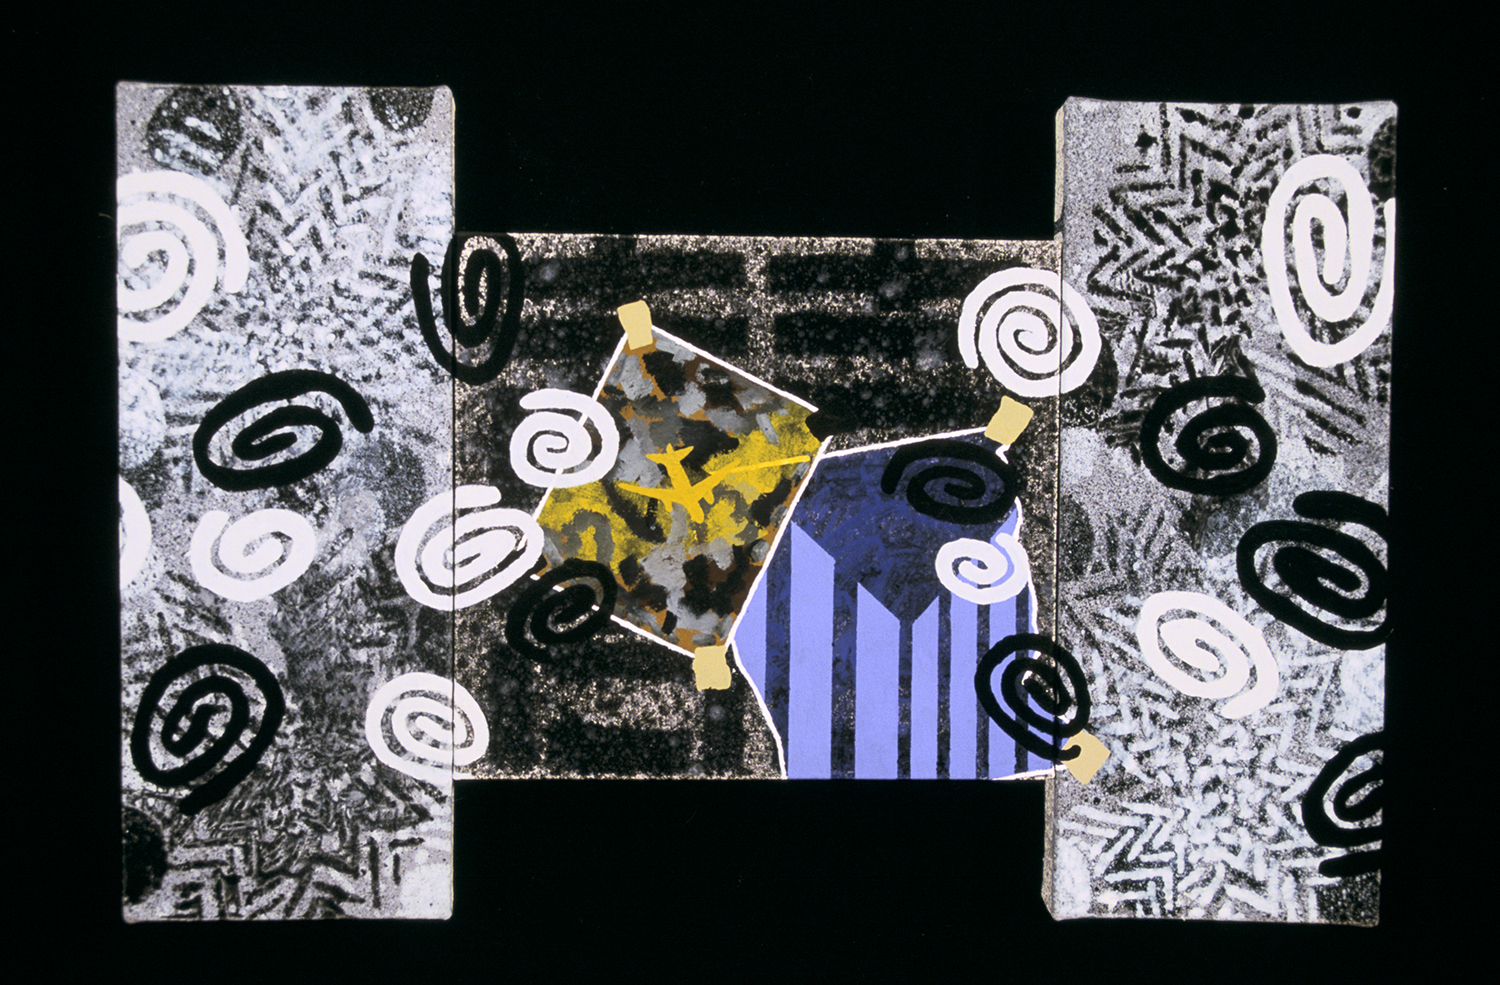 What I Saw Triptych 13  , 2001, oil and wax on canvas, 14 x 14 in.